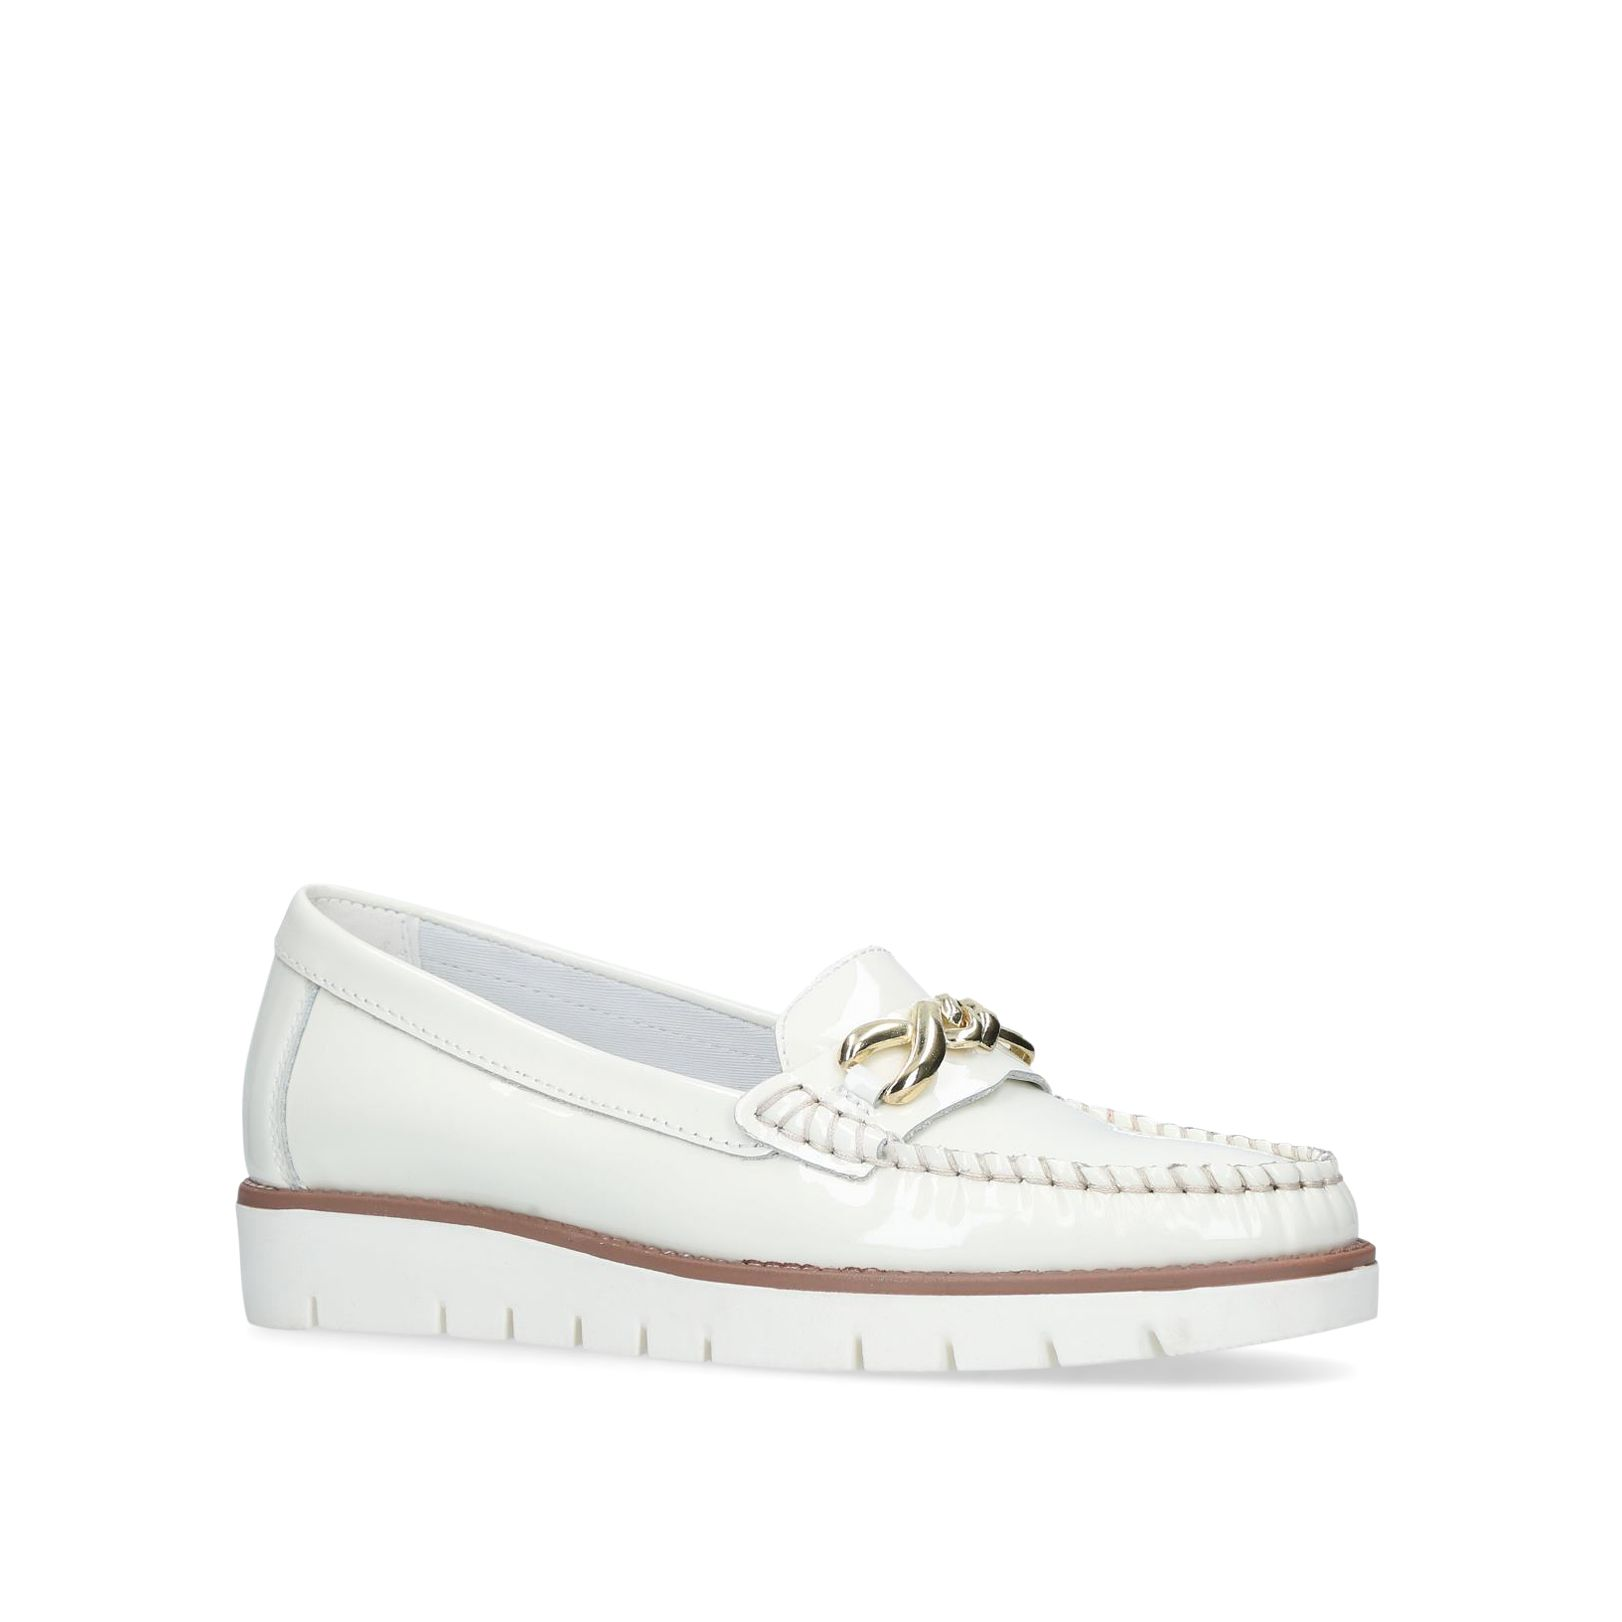 Carvela Comfort Casper Loafers, White